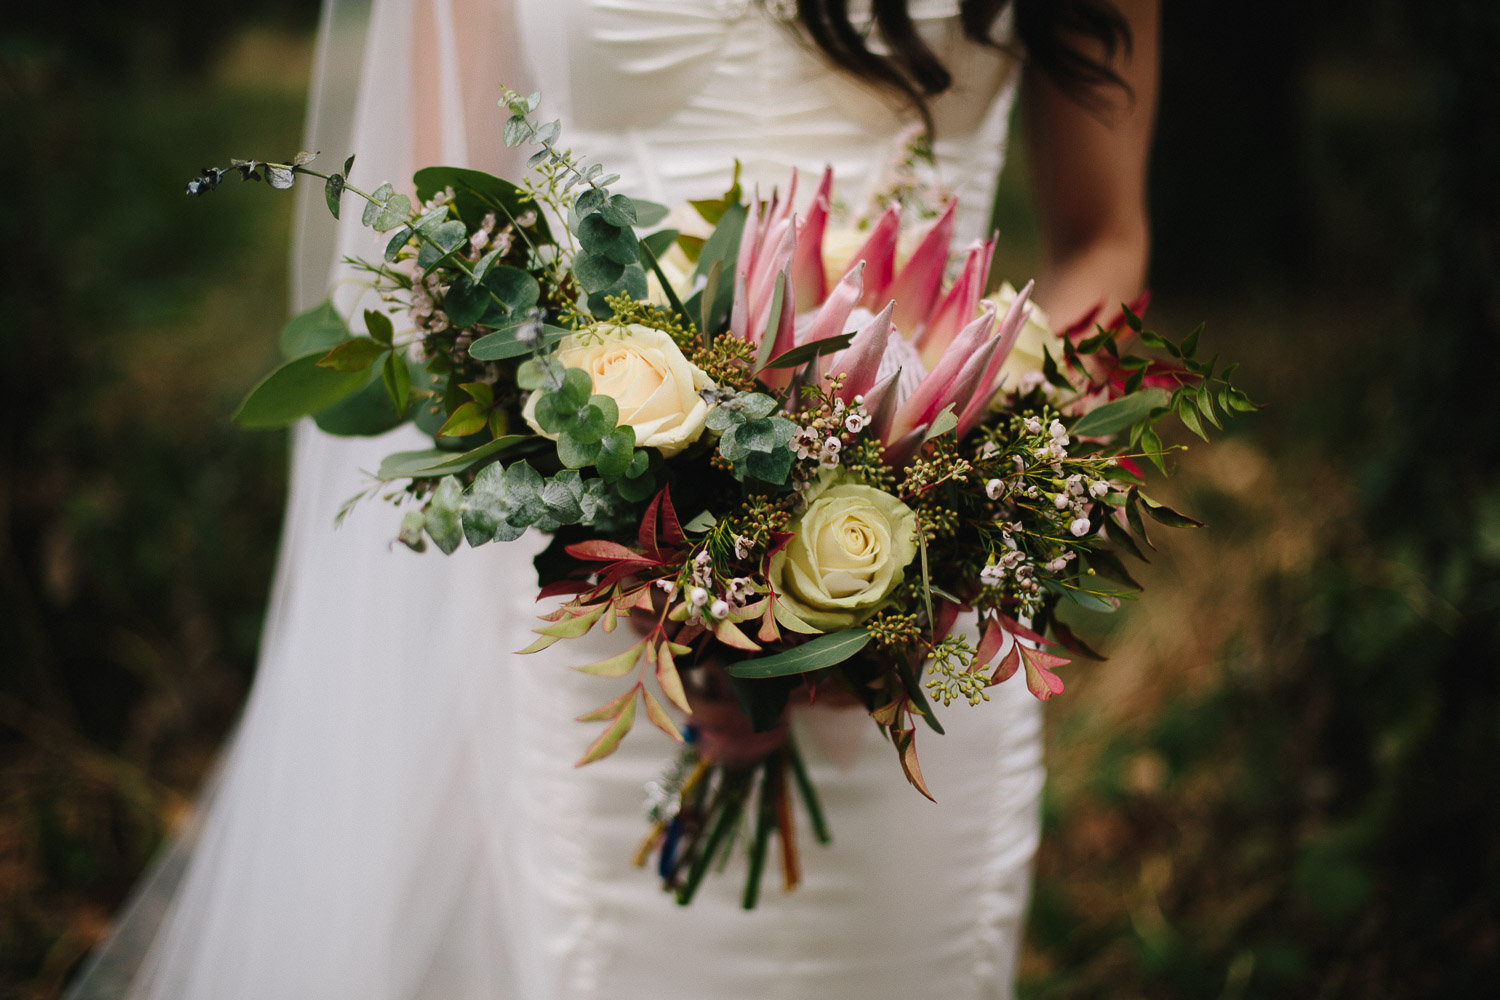 71-bride-bouquet.jpg